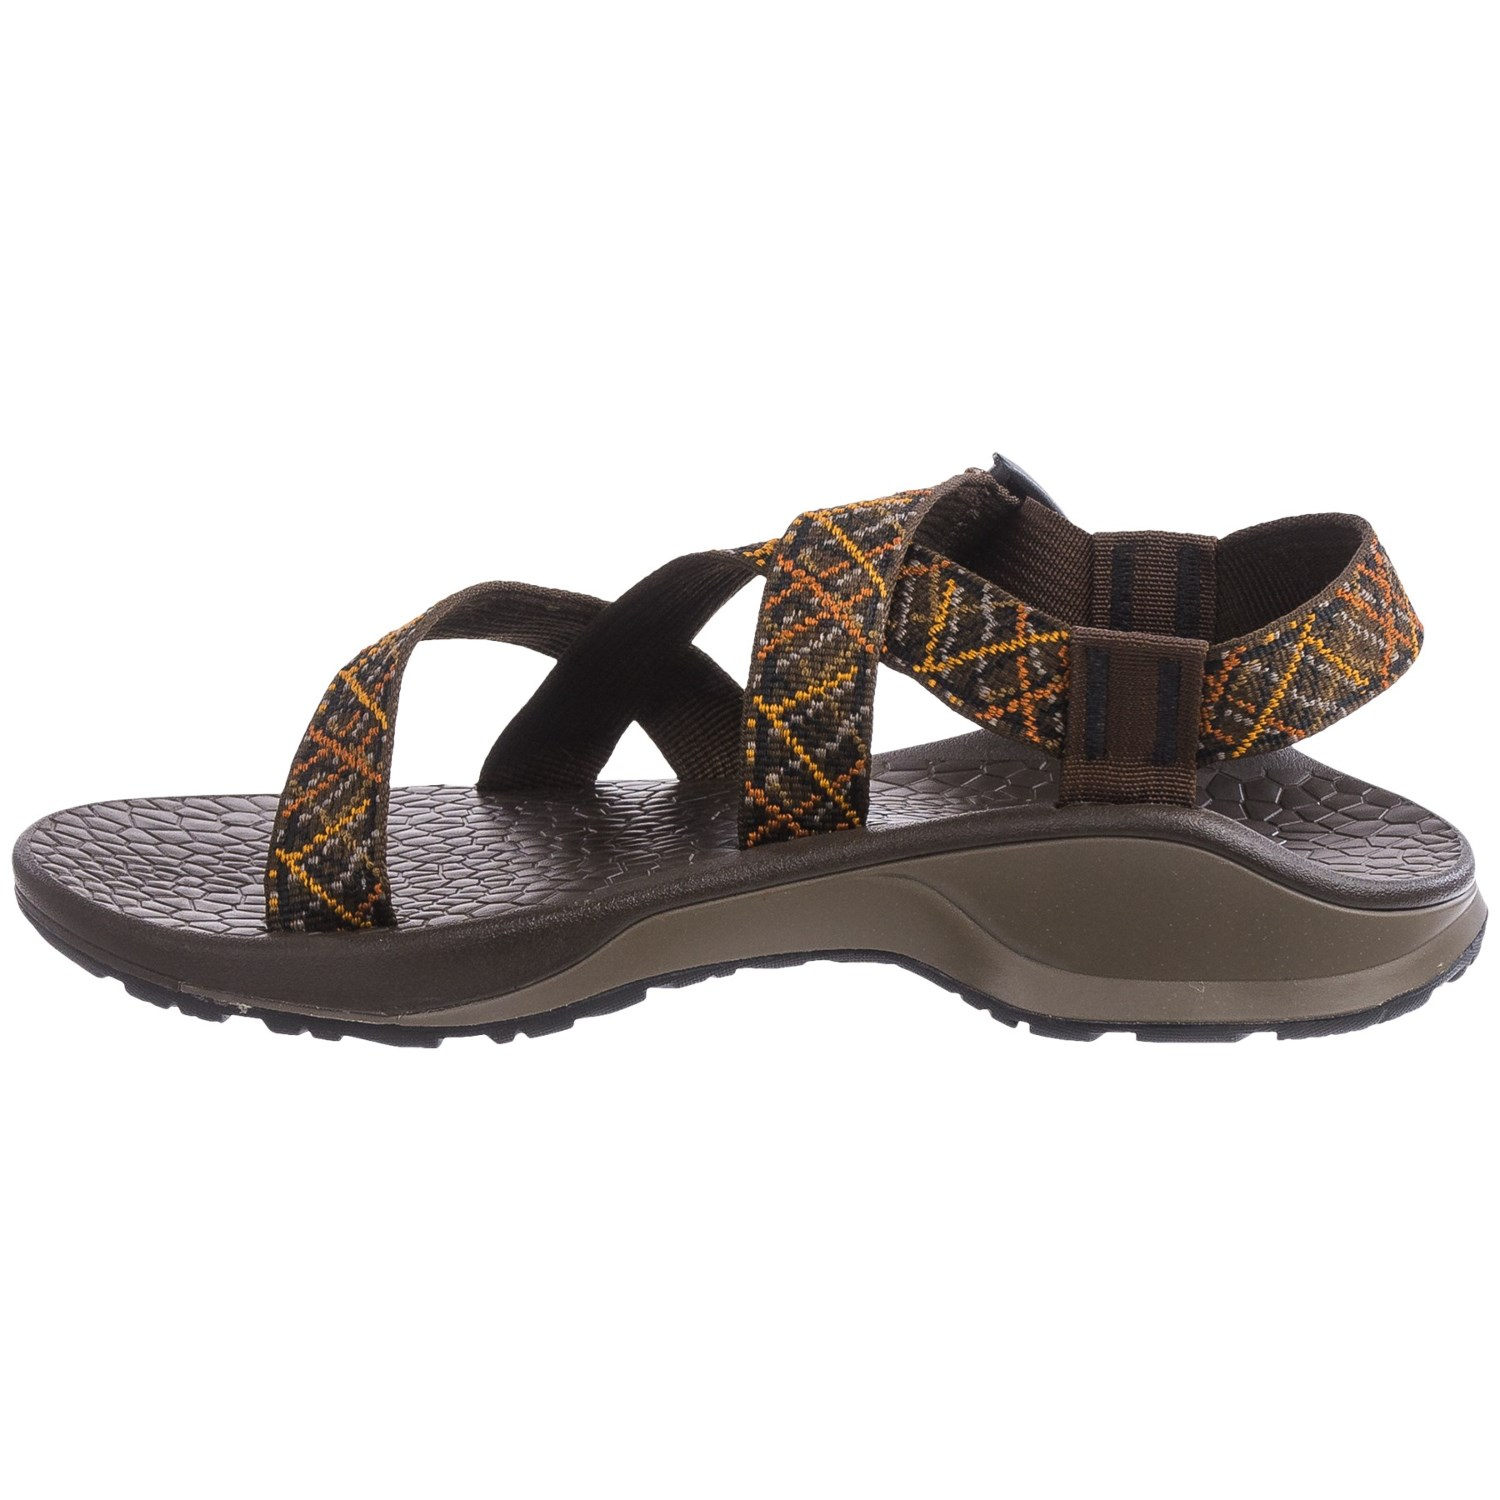 74603dab93a Chaco Updraft EcoTread Sport Sandals (For Men) - Save 58%